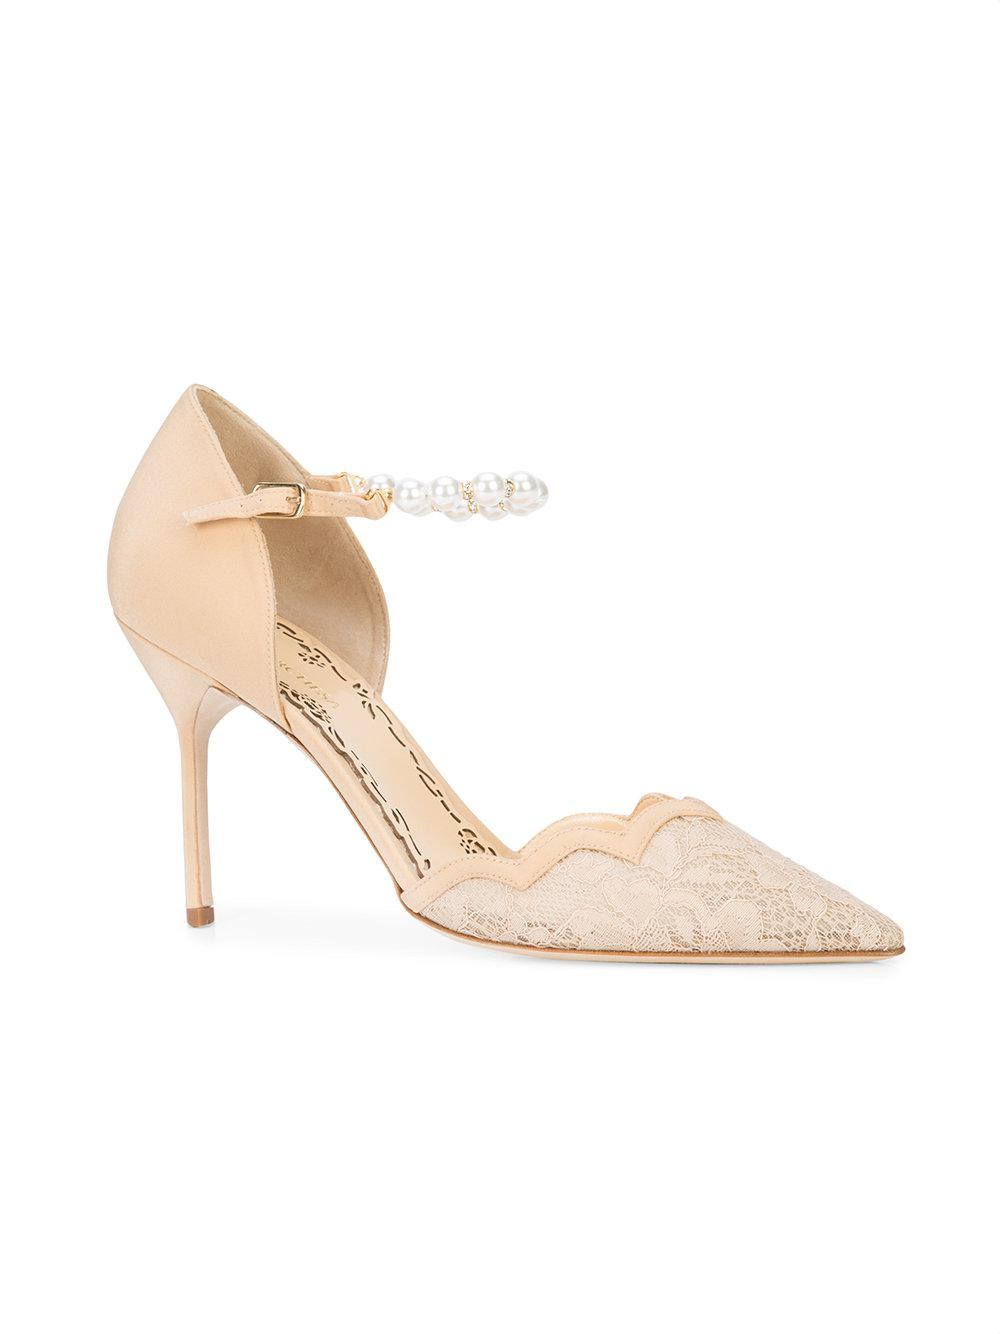 nude shoe pearl embellished lace pumps